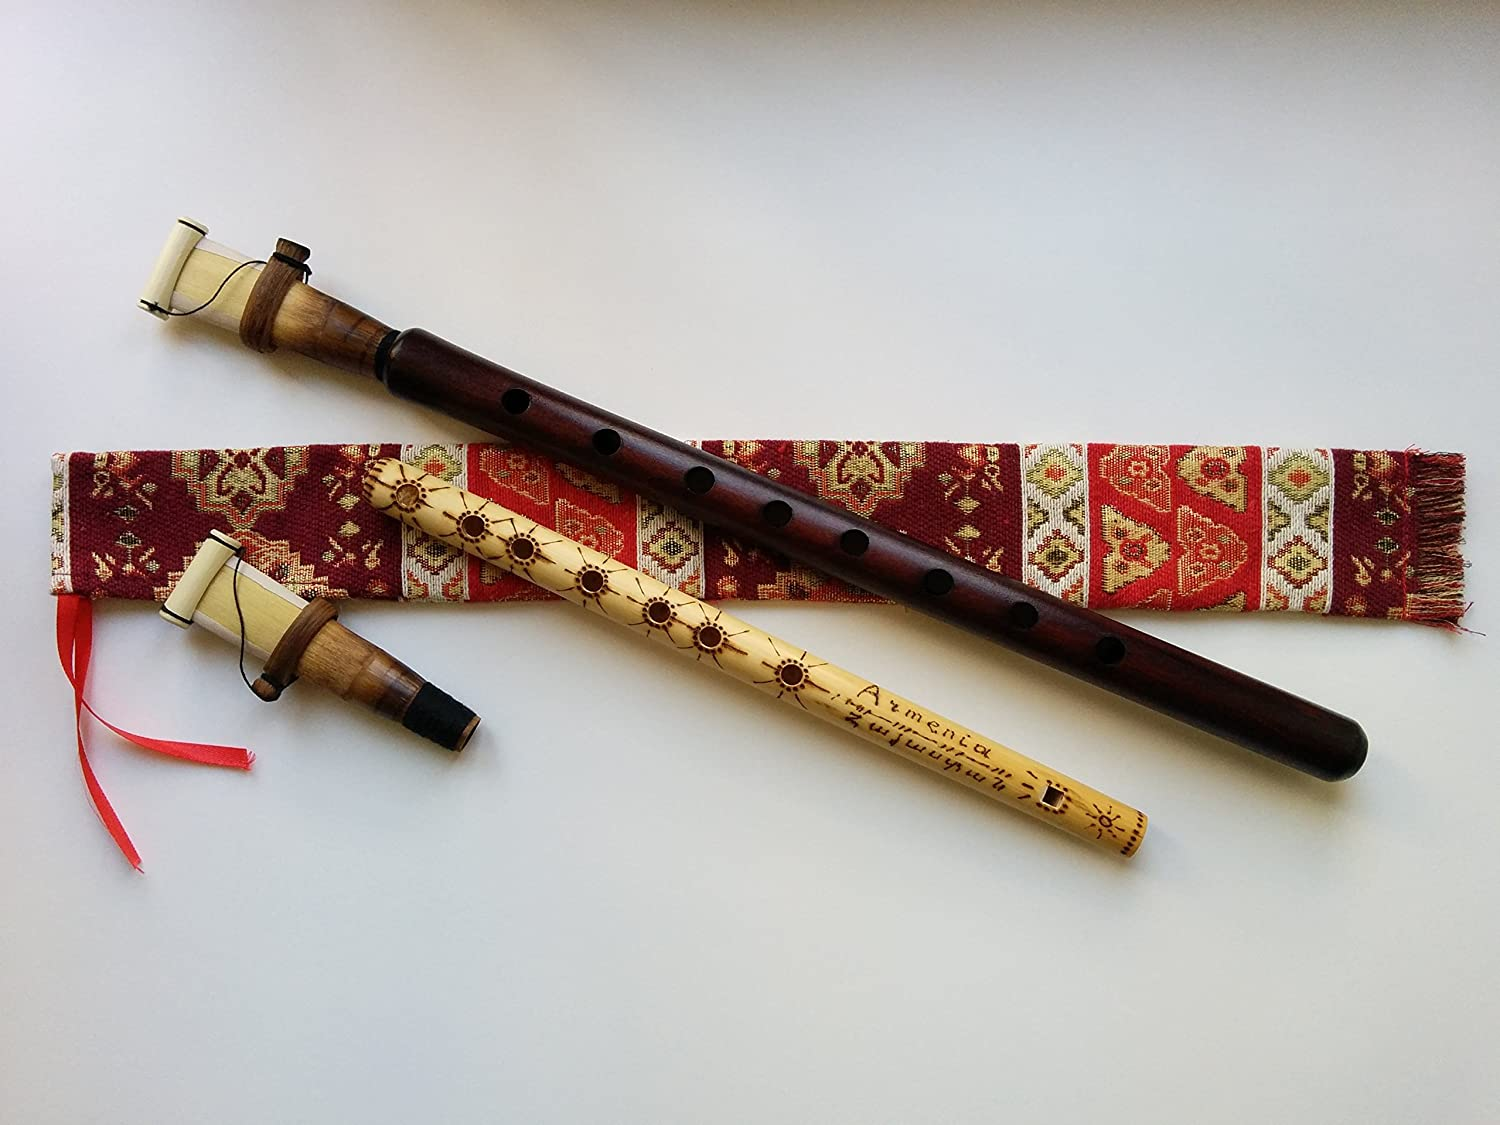 Armenian DUDUK PRO Musical Instrument from Apricot Wood, 2 Reeds, National Case, Playing Instruction, Free Gift - Kamesh Flute Azo